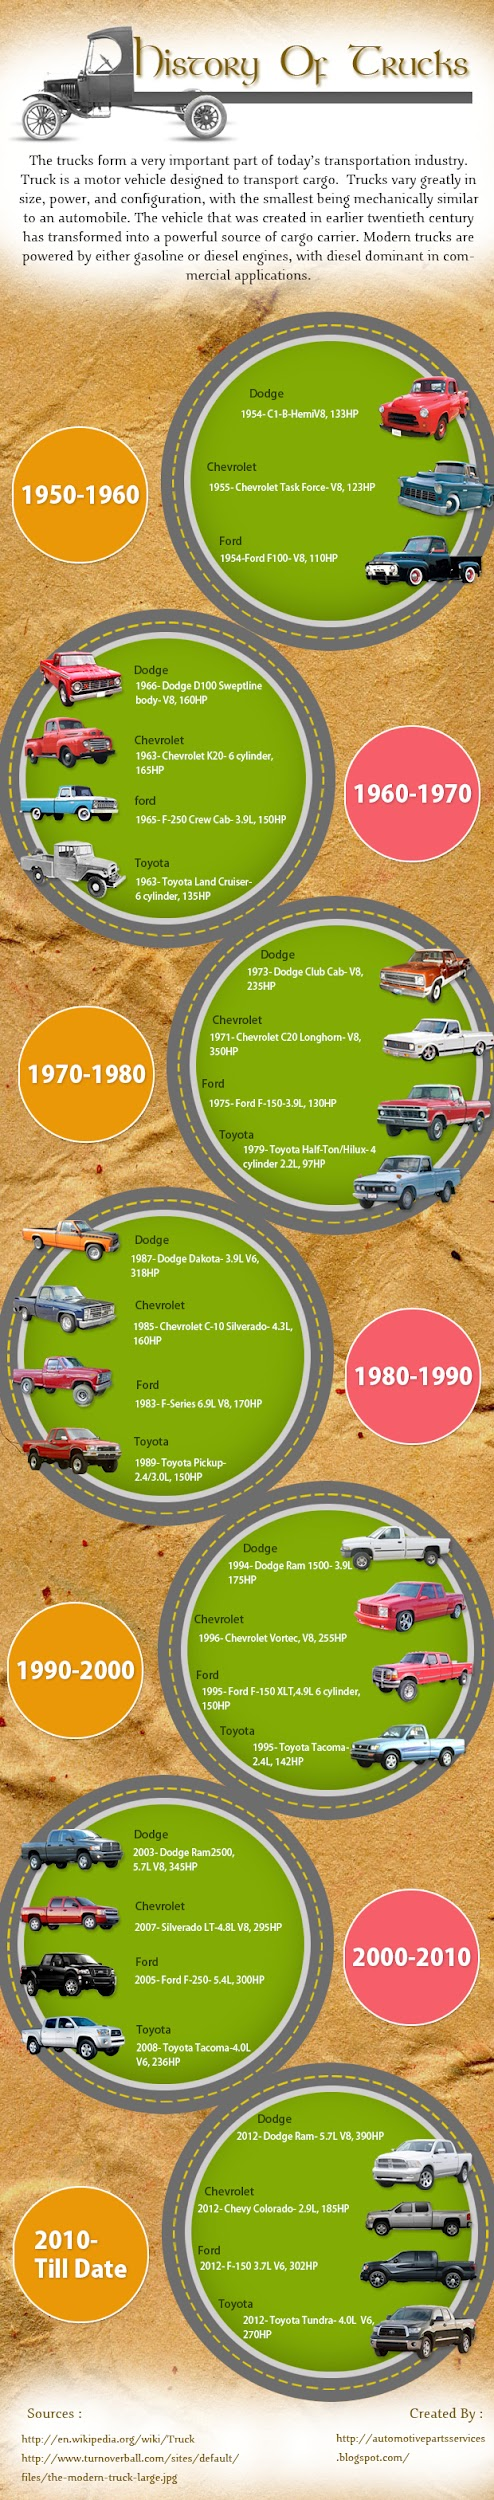 history-of-trucks-infographic_5034c7ad87359